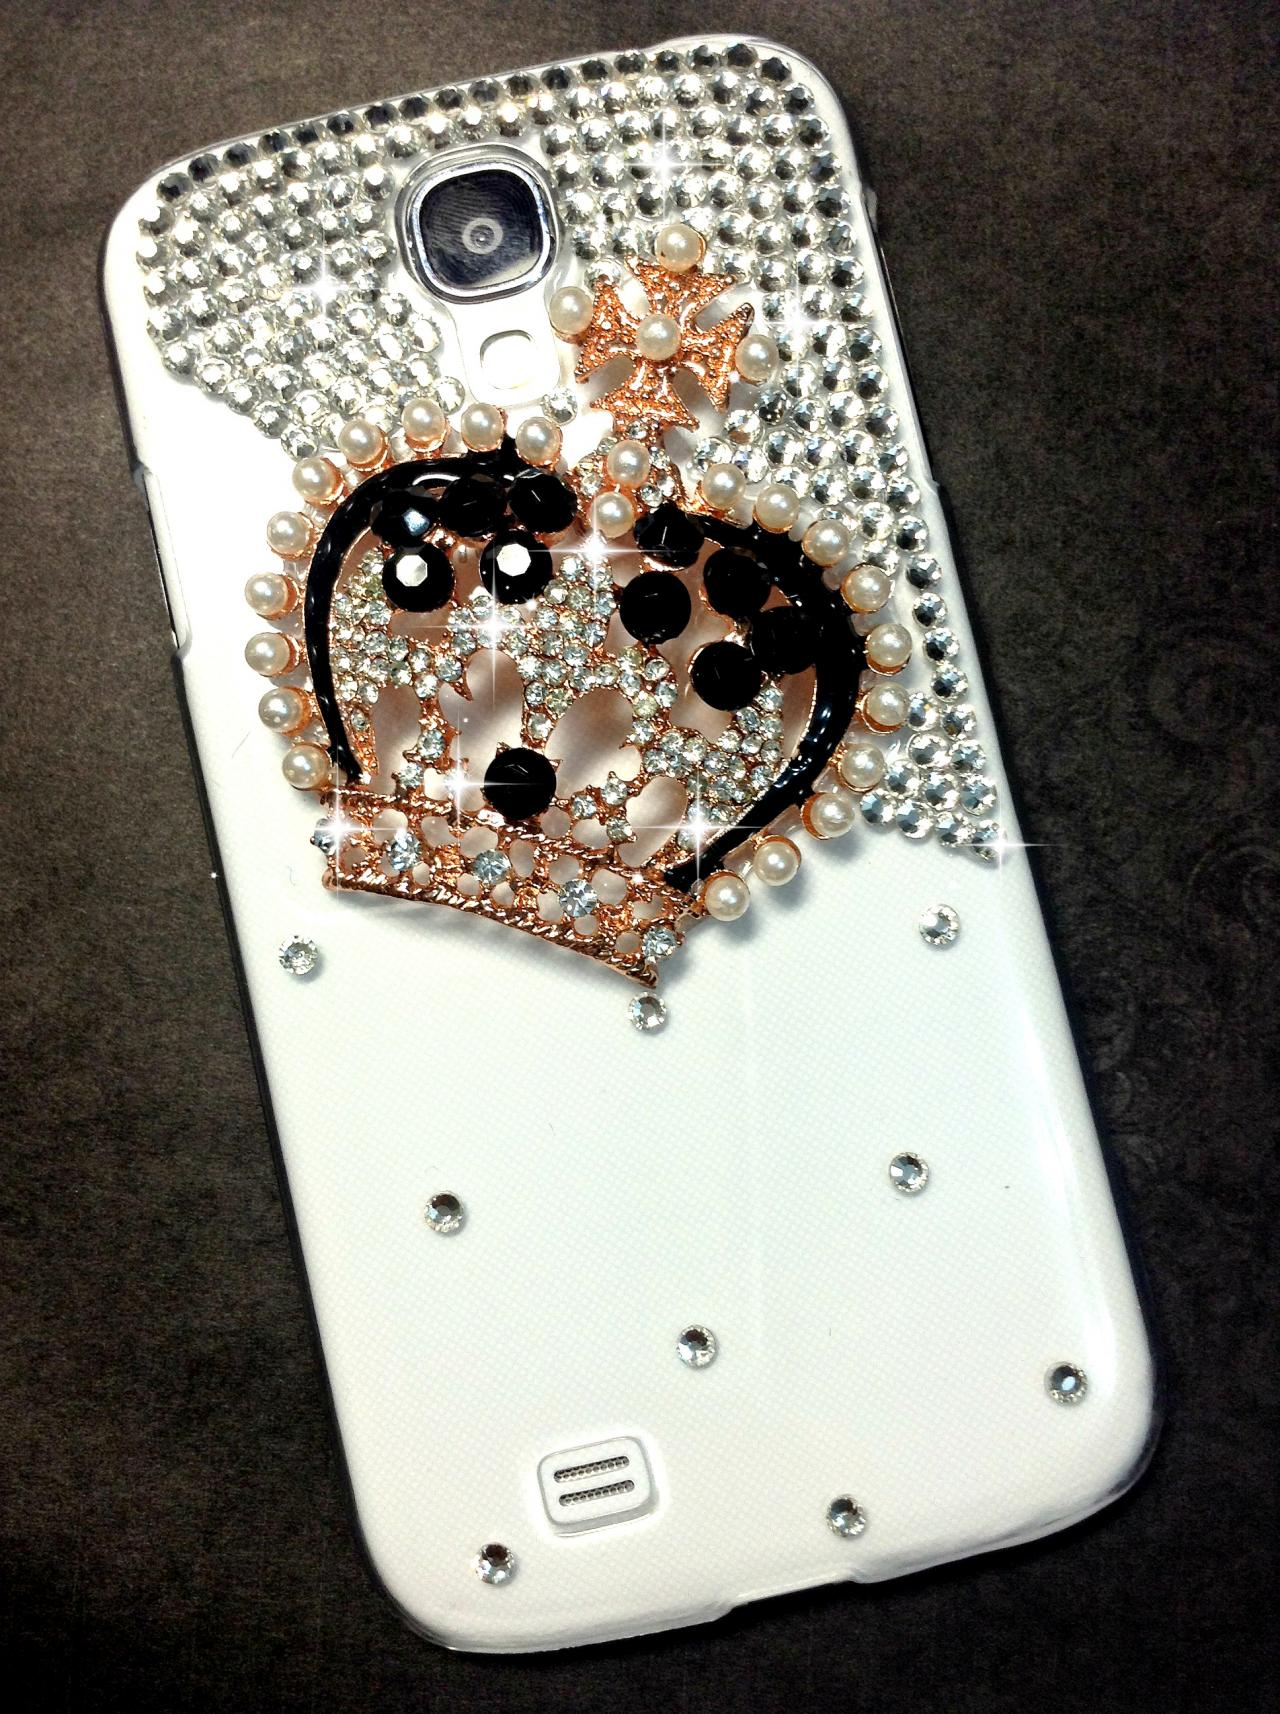 3D Handmade Crown Crystal Design Case Cover For Samsung Galaxy S 4 S4 IV LTE i9500 i9505